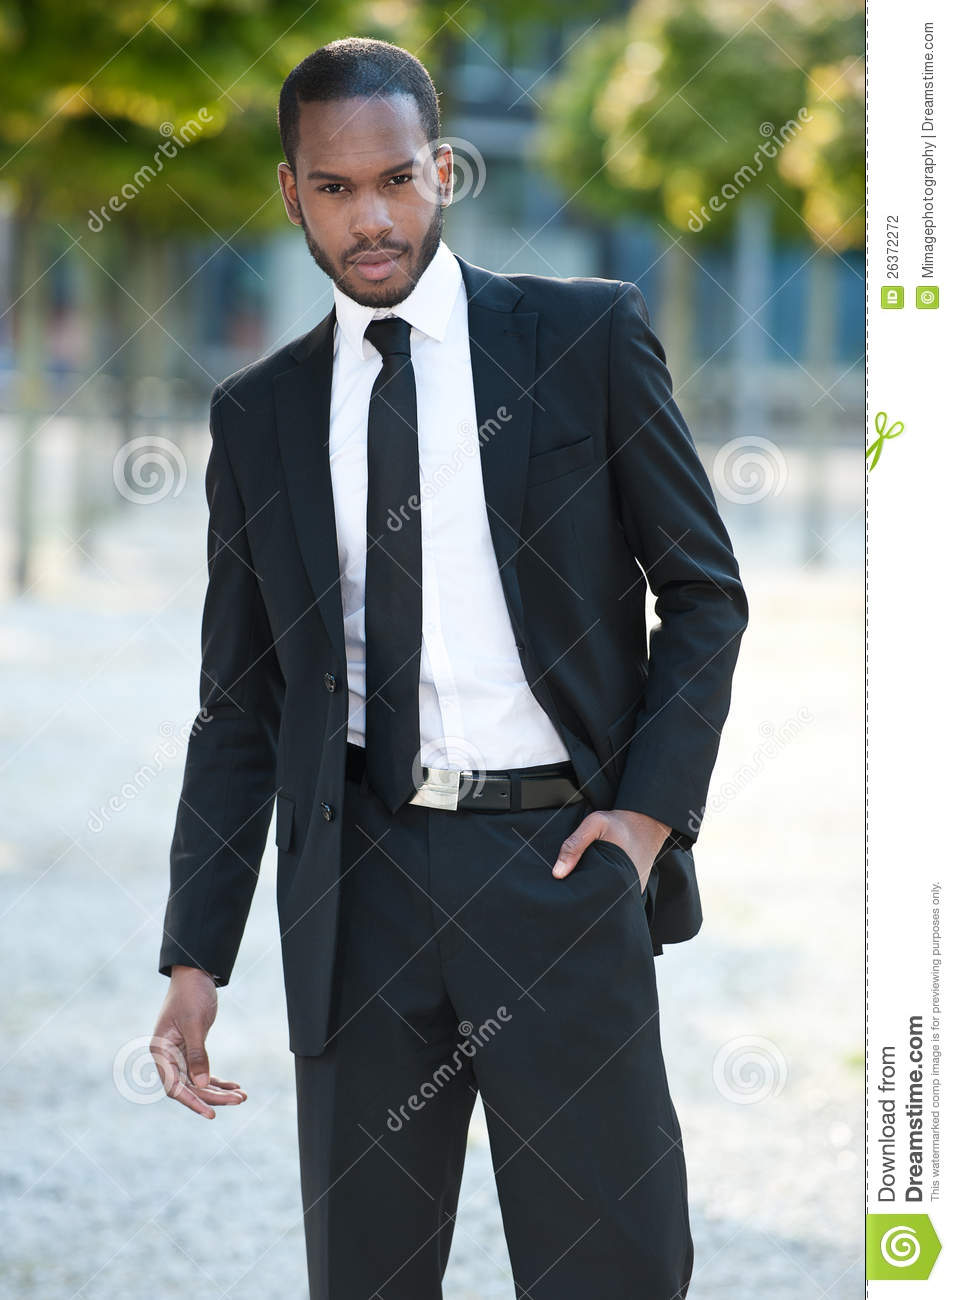 Young Black Man In A Suit Outside Stock Photography - Image: 26372272